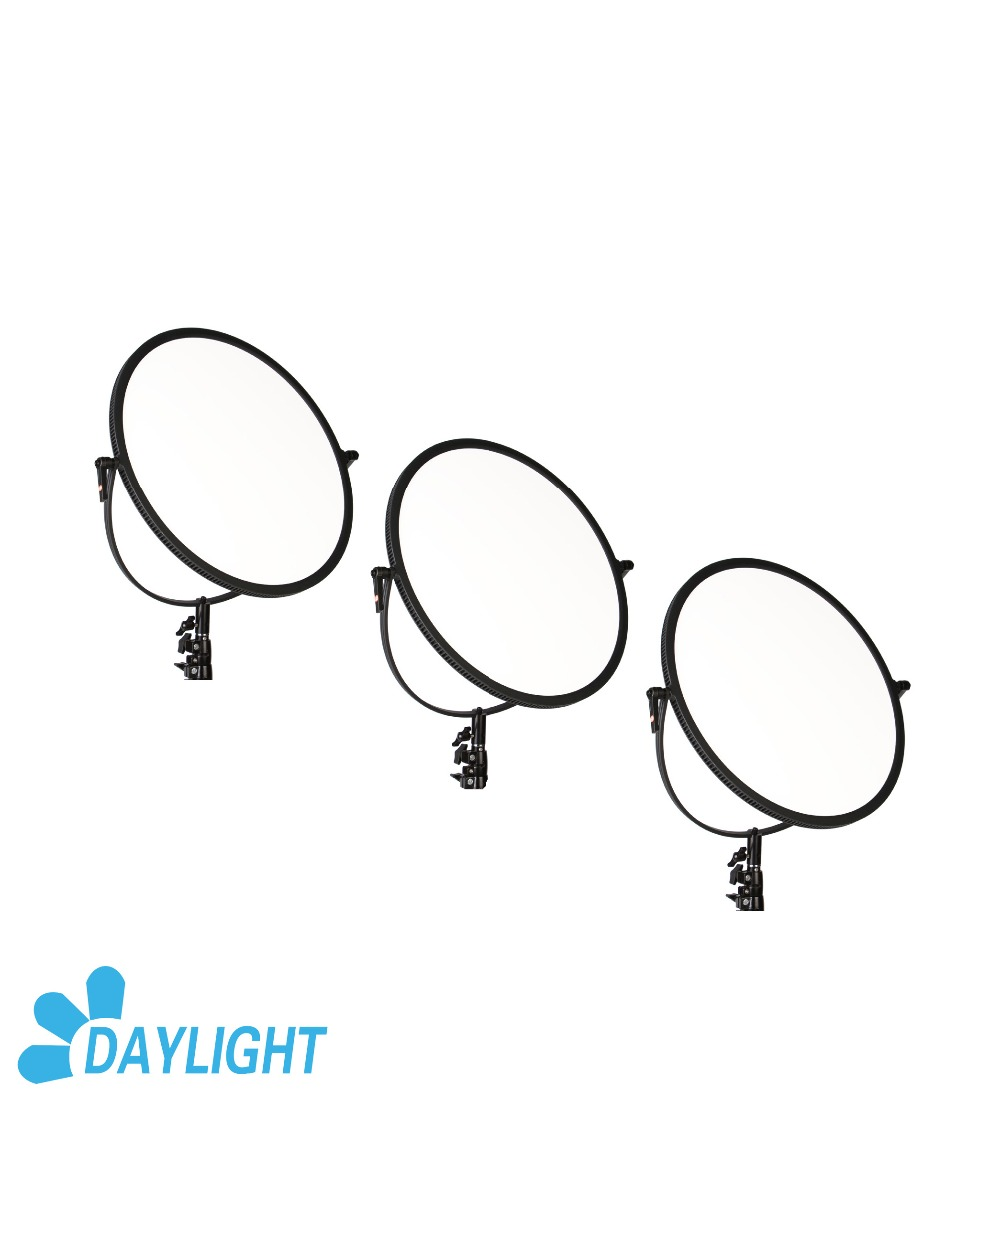 CAME TV C700D Daylight LED Edge Light (3 Pieces Set) Led